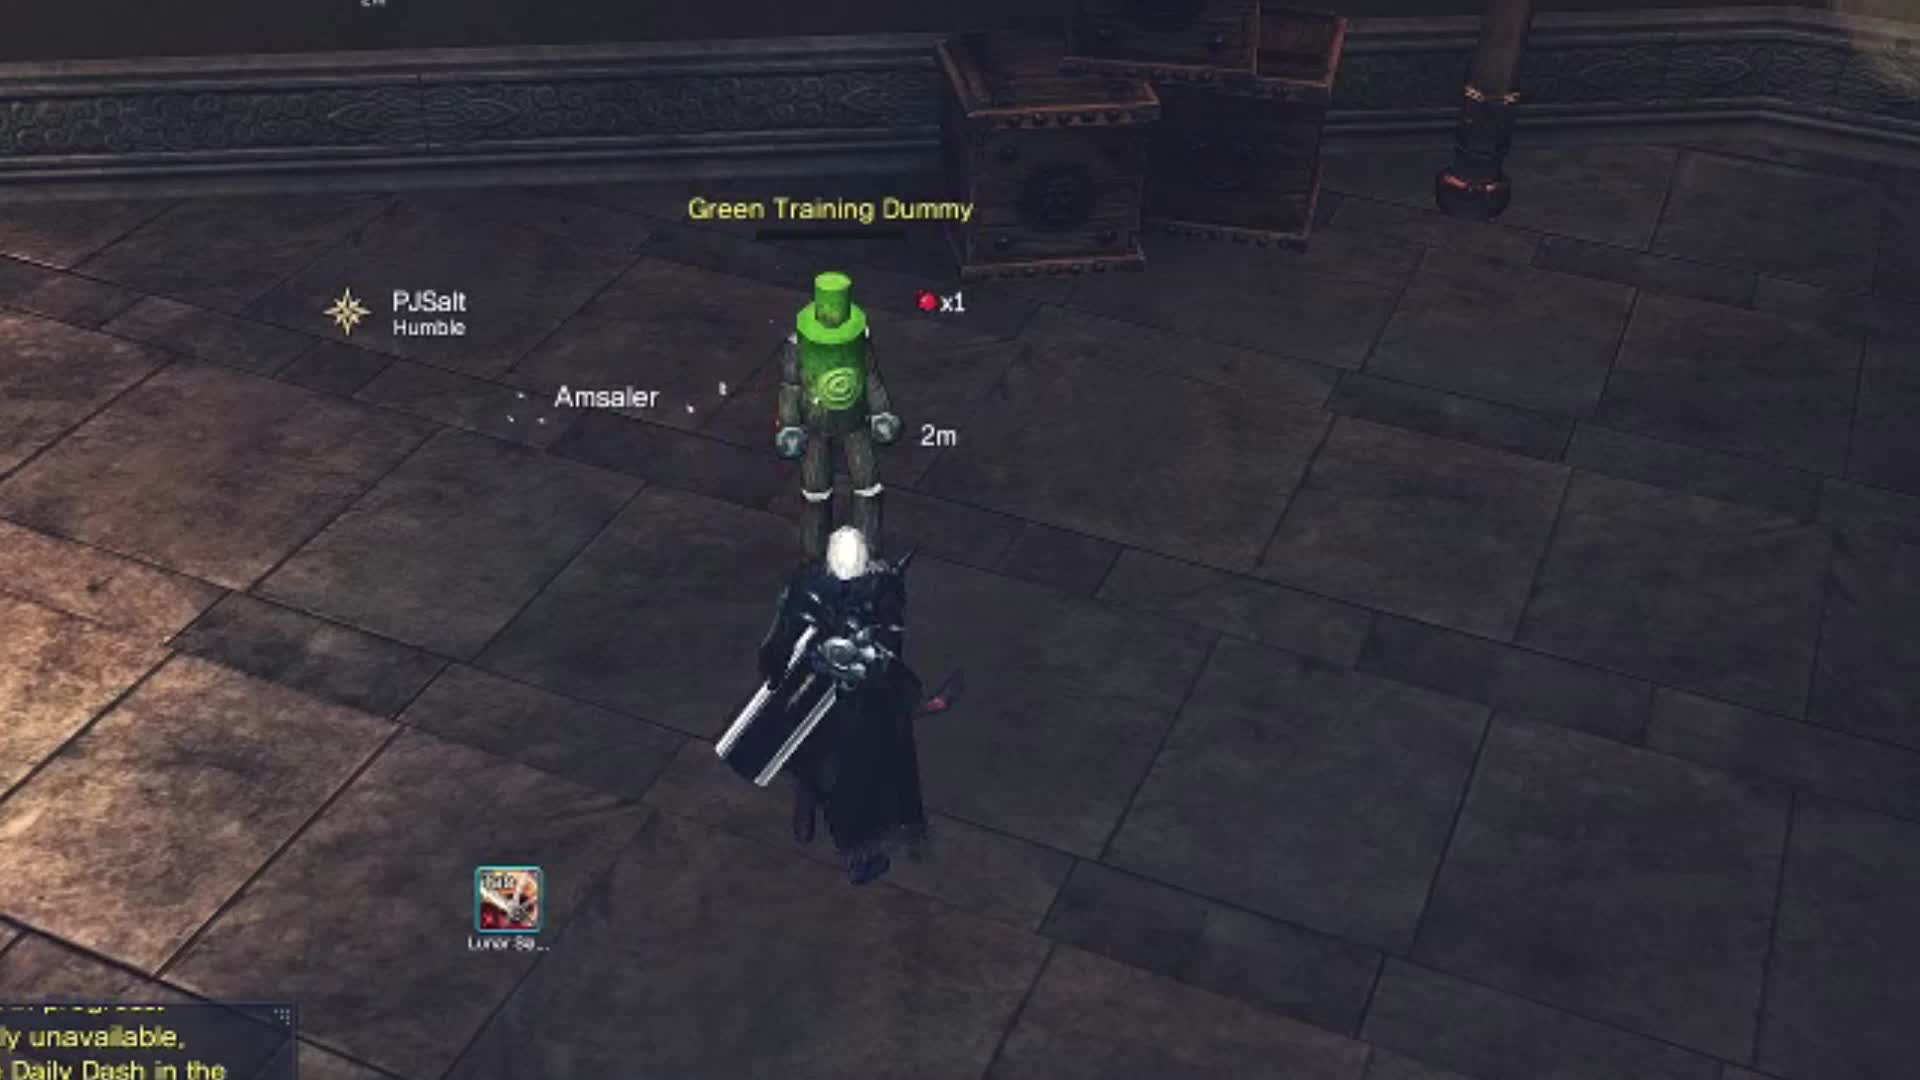 bladeandsoul, Untitled GIFs